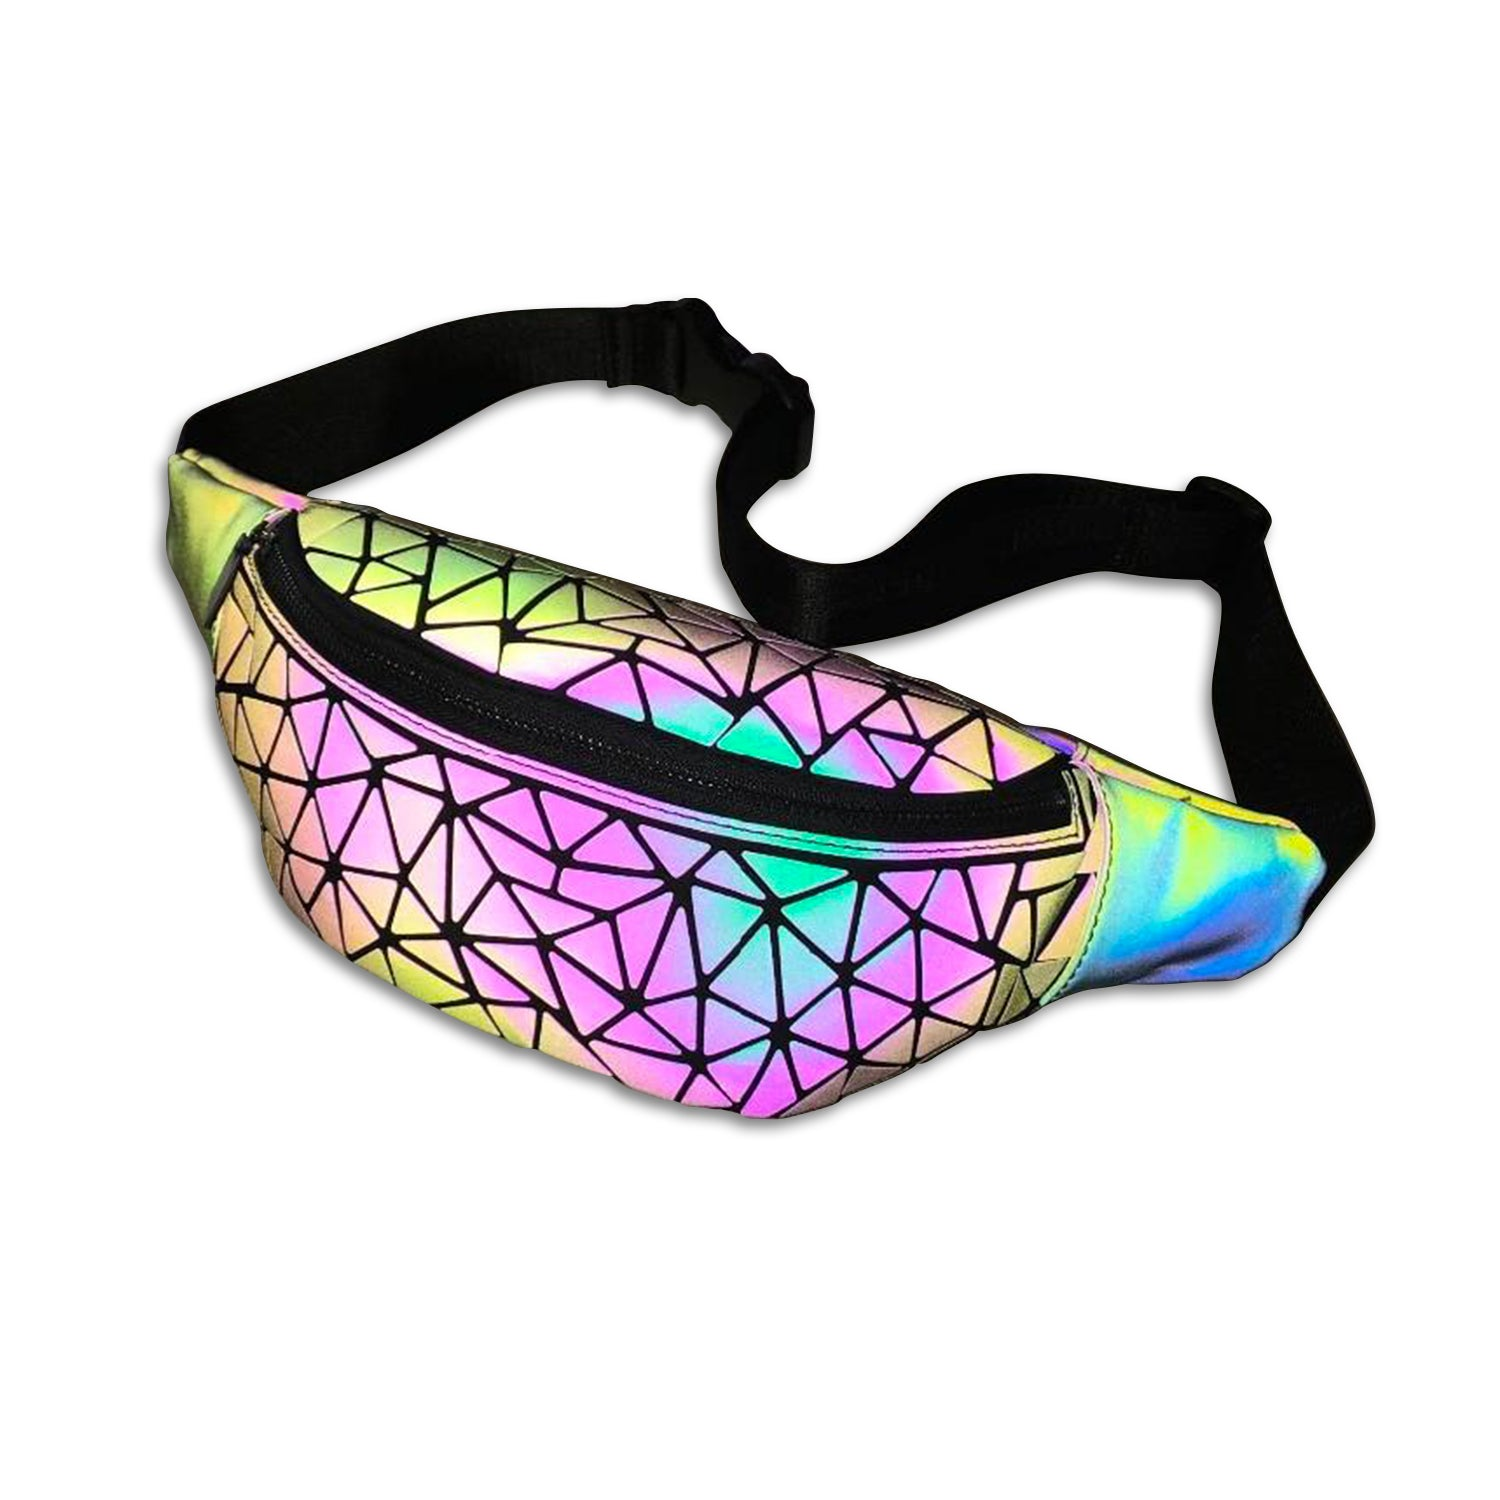 Glowcoco Holographic Waist Bag - glowcoco reflective clothing